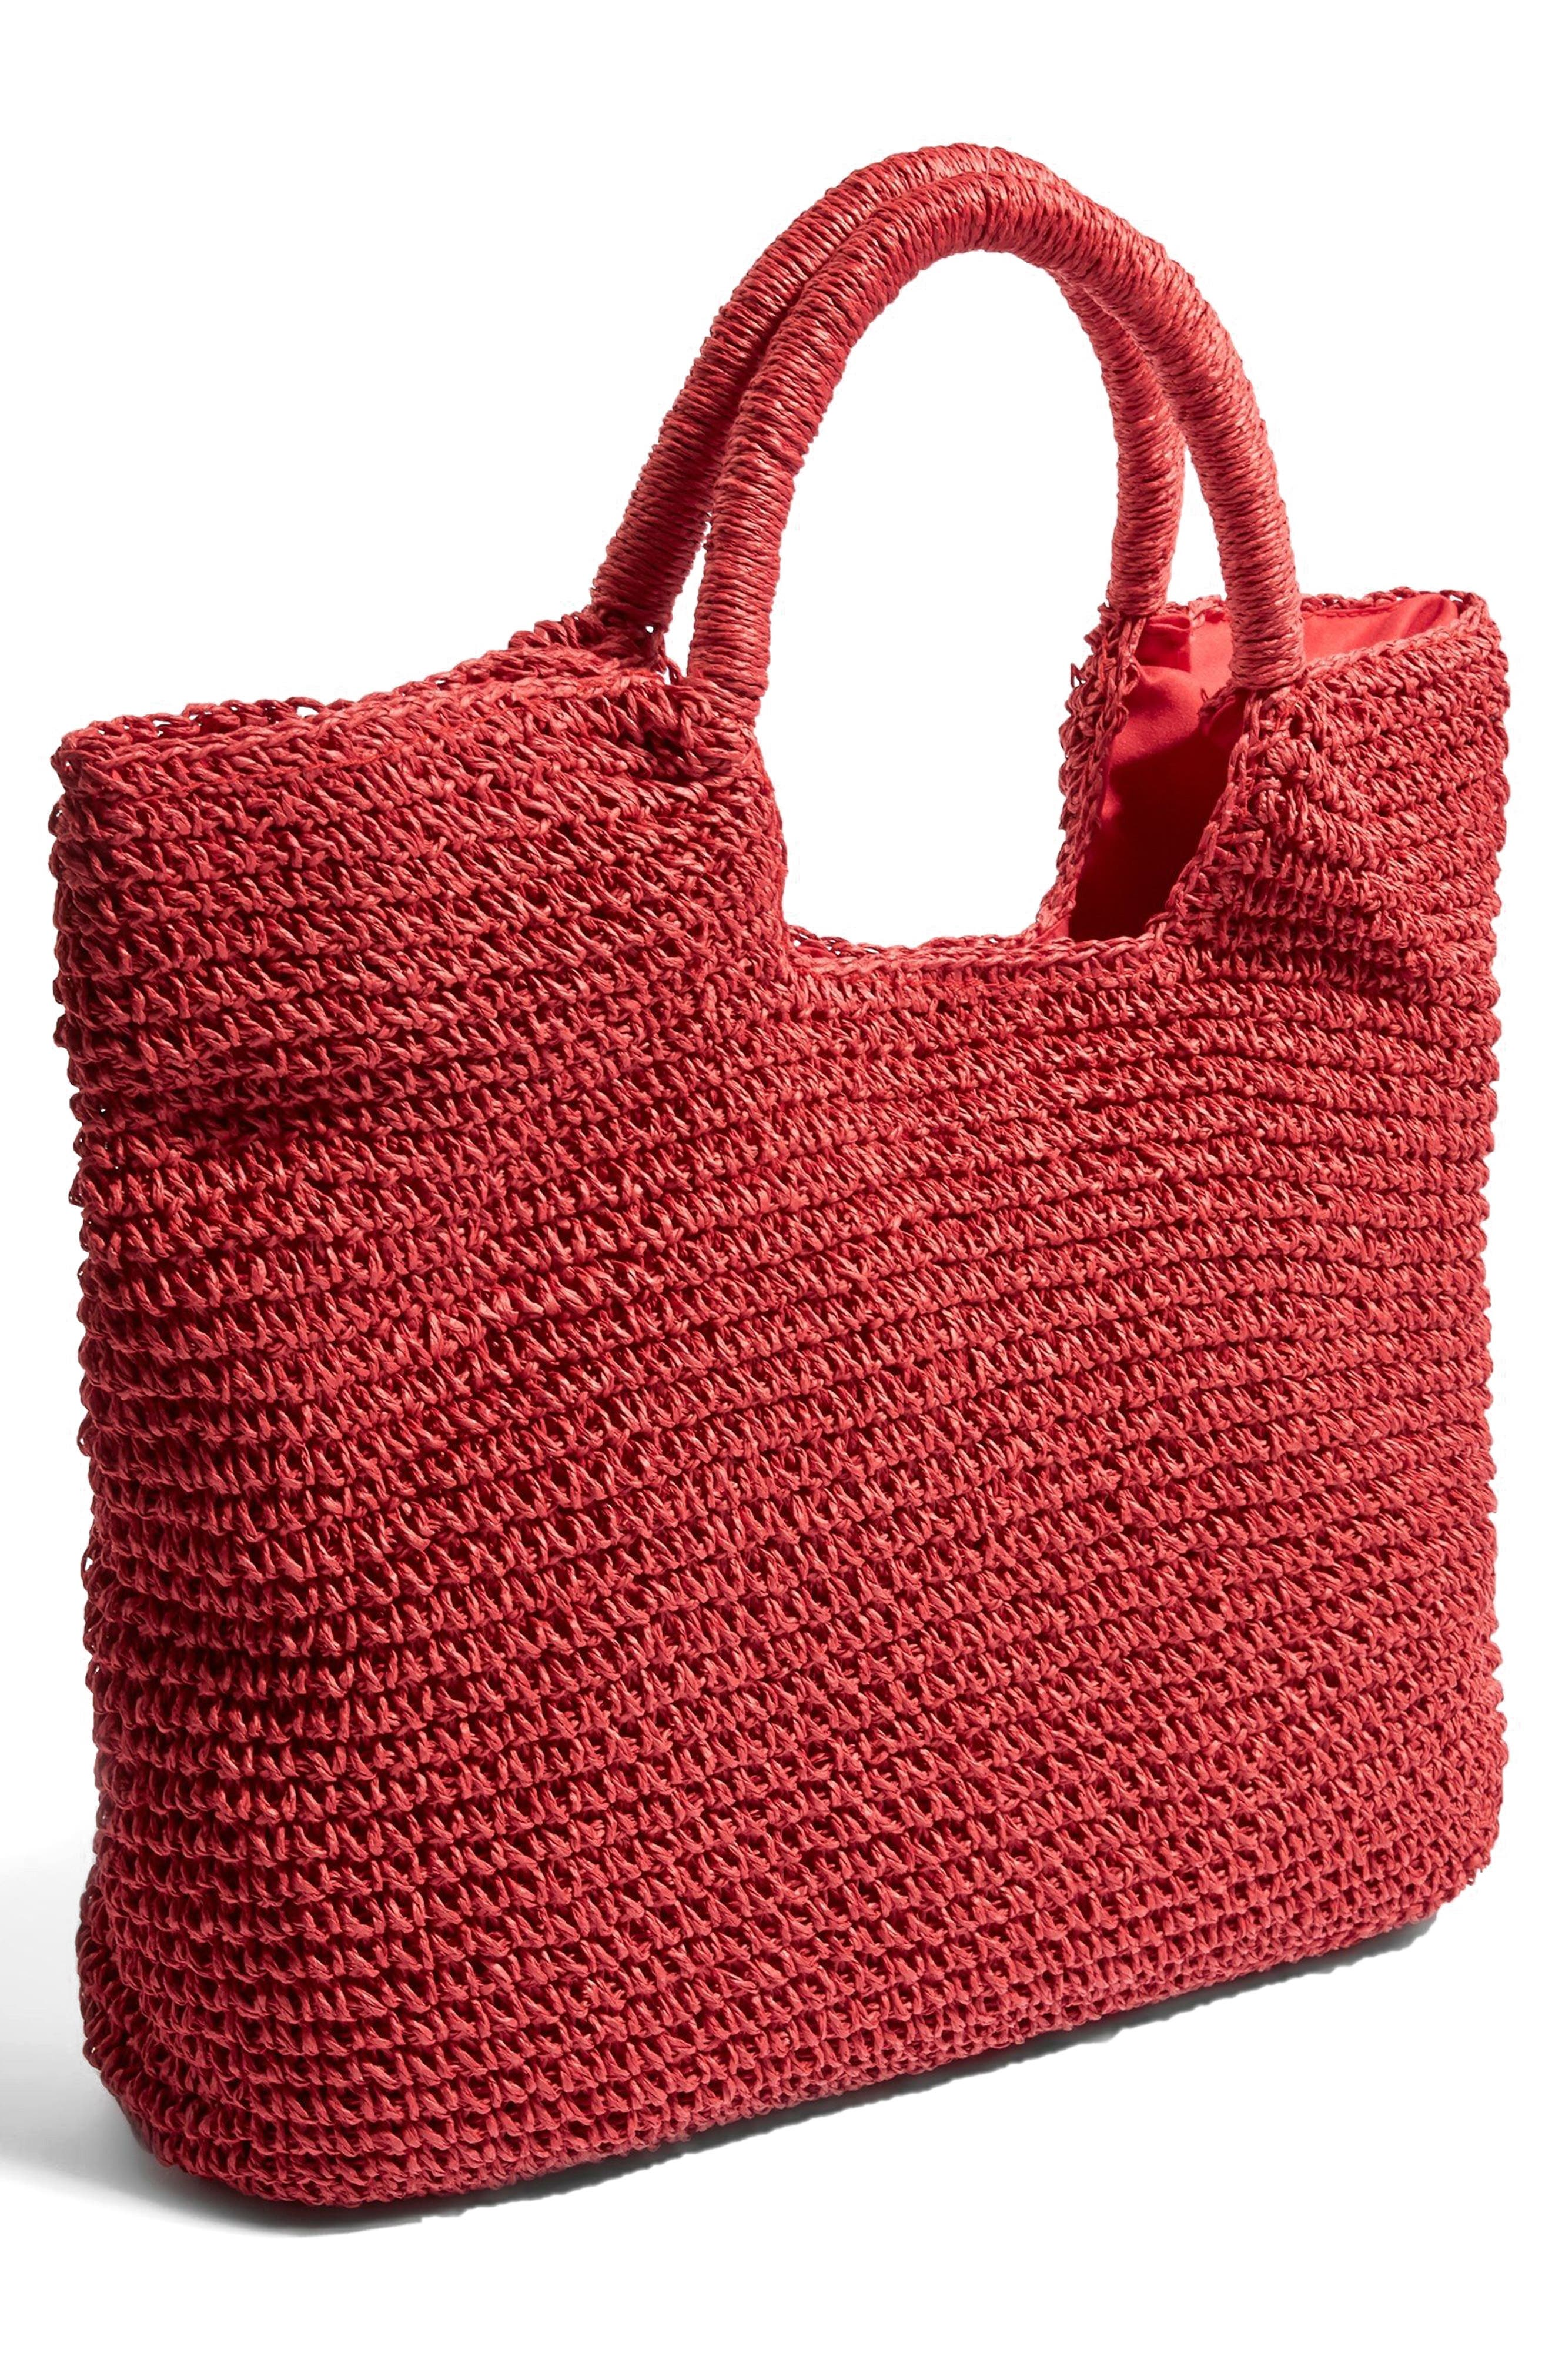 Brighty Straw Tote Bag,                             Alternate thumbnail 3, color,                             Red